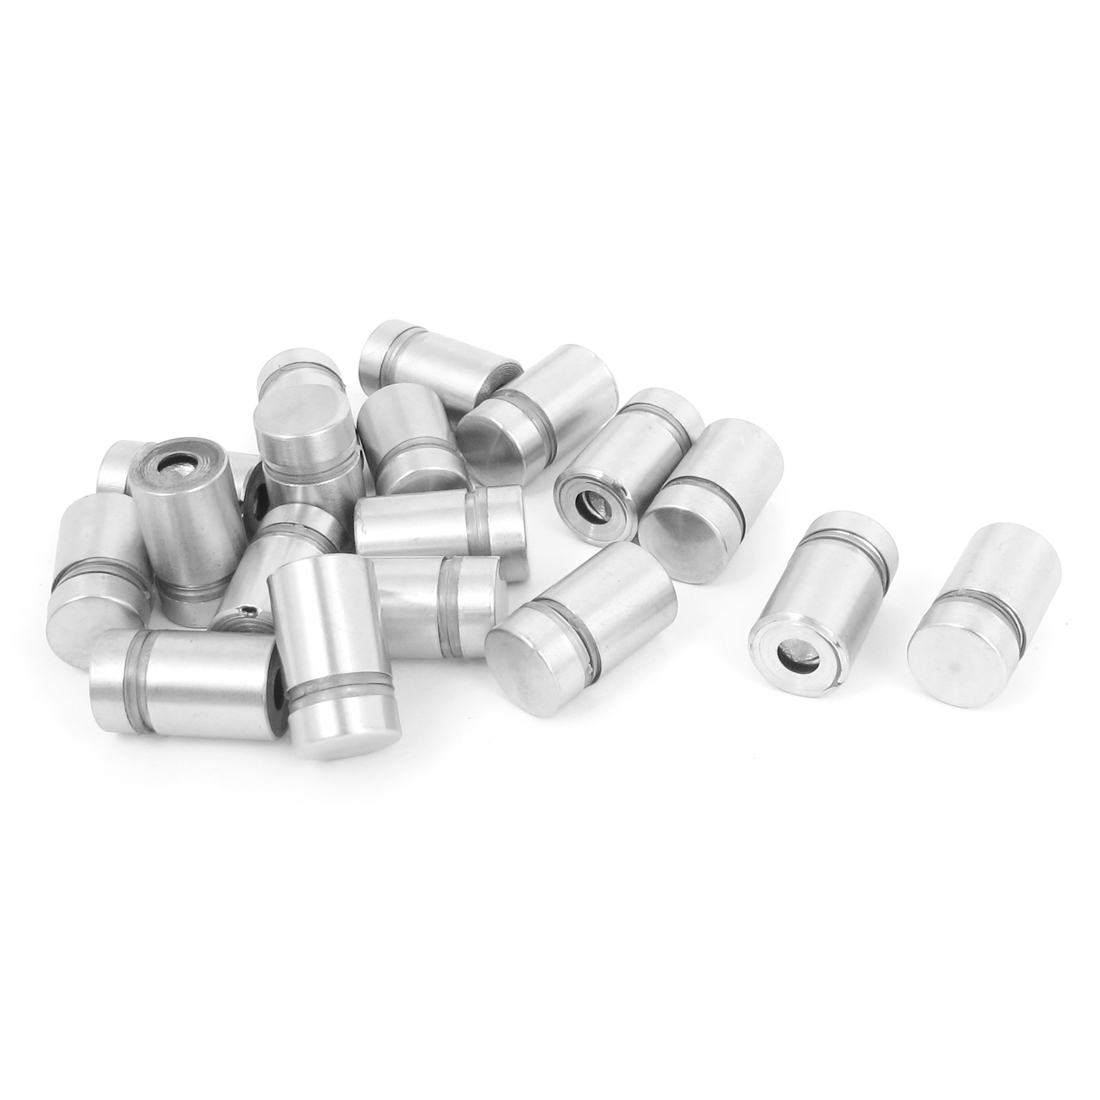 12mm x 20mm Stainless Steel Advertising Frameless Glass Standoff Pins 18pcs